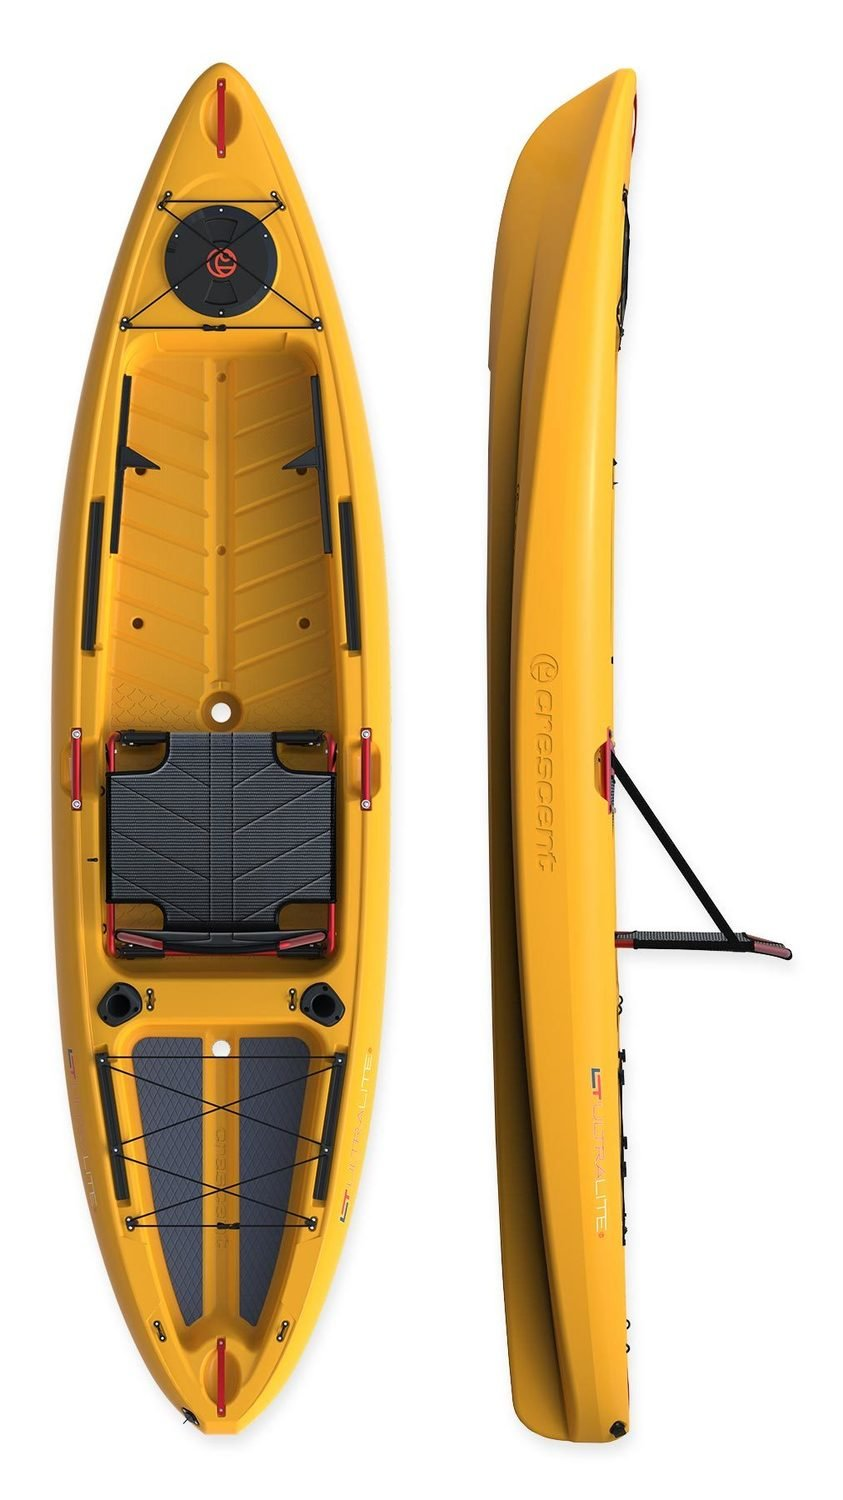 Crescent Kayak Ultralight 10.2 Tangerine **** Store pickup only No Shipping ****